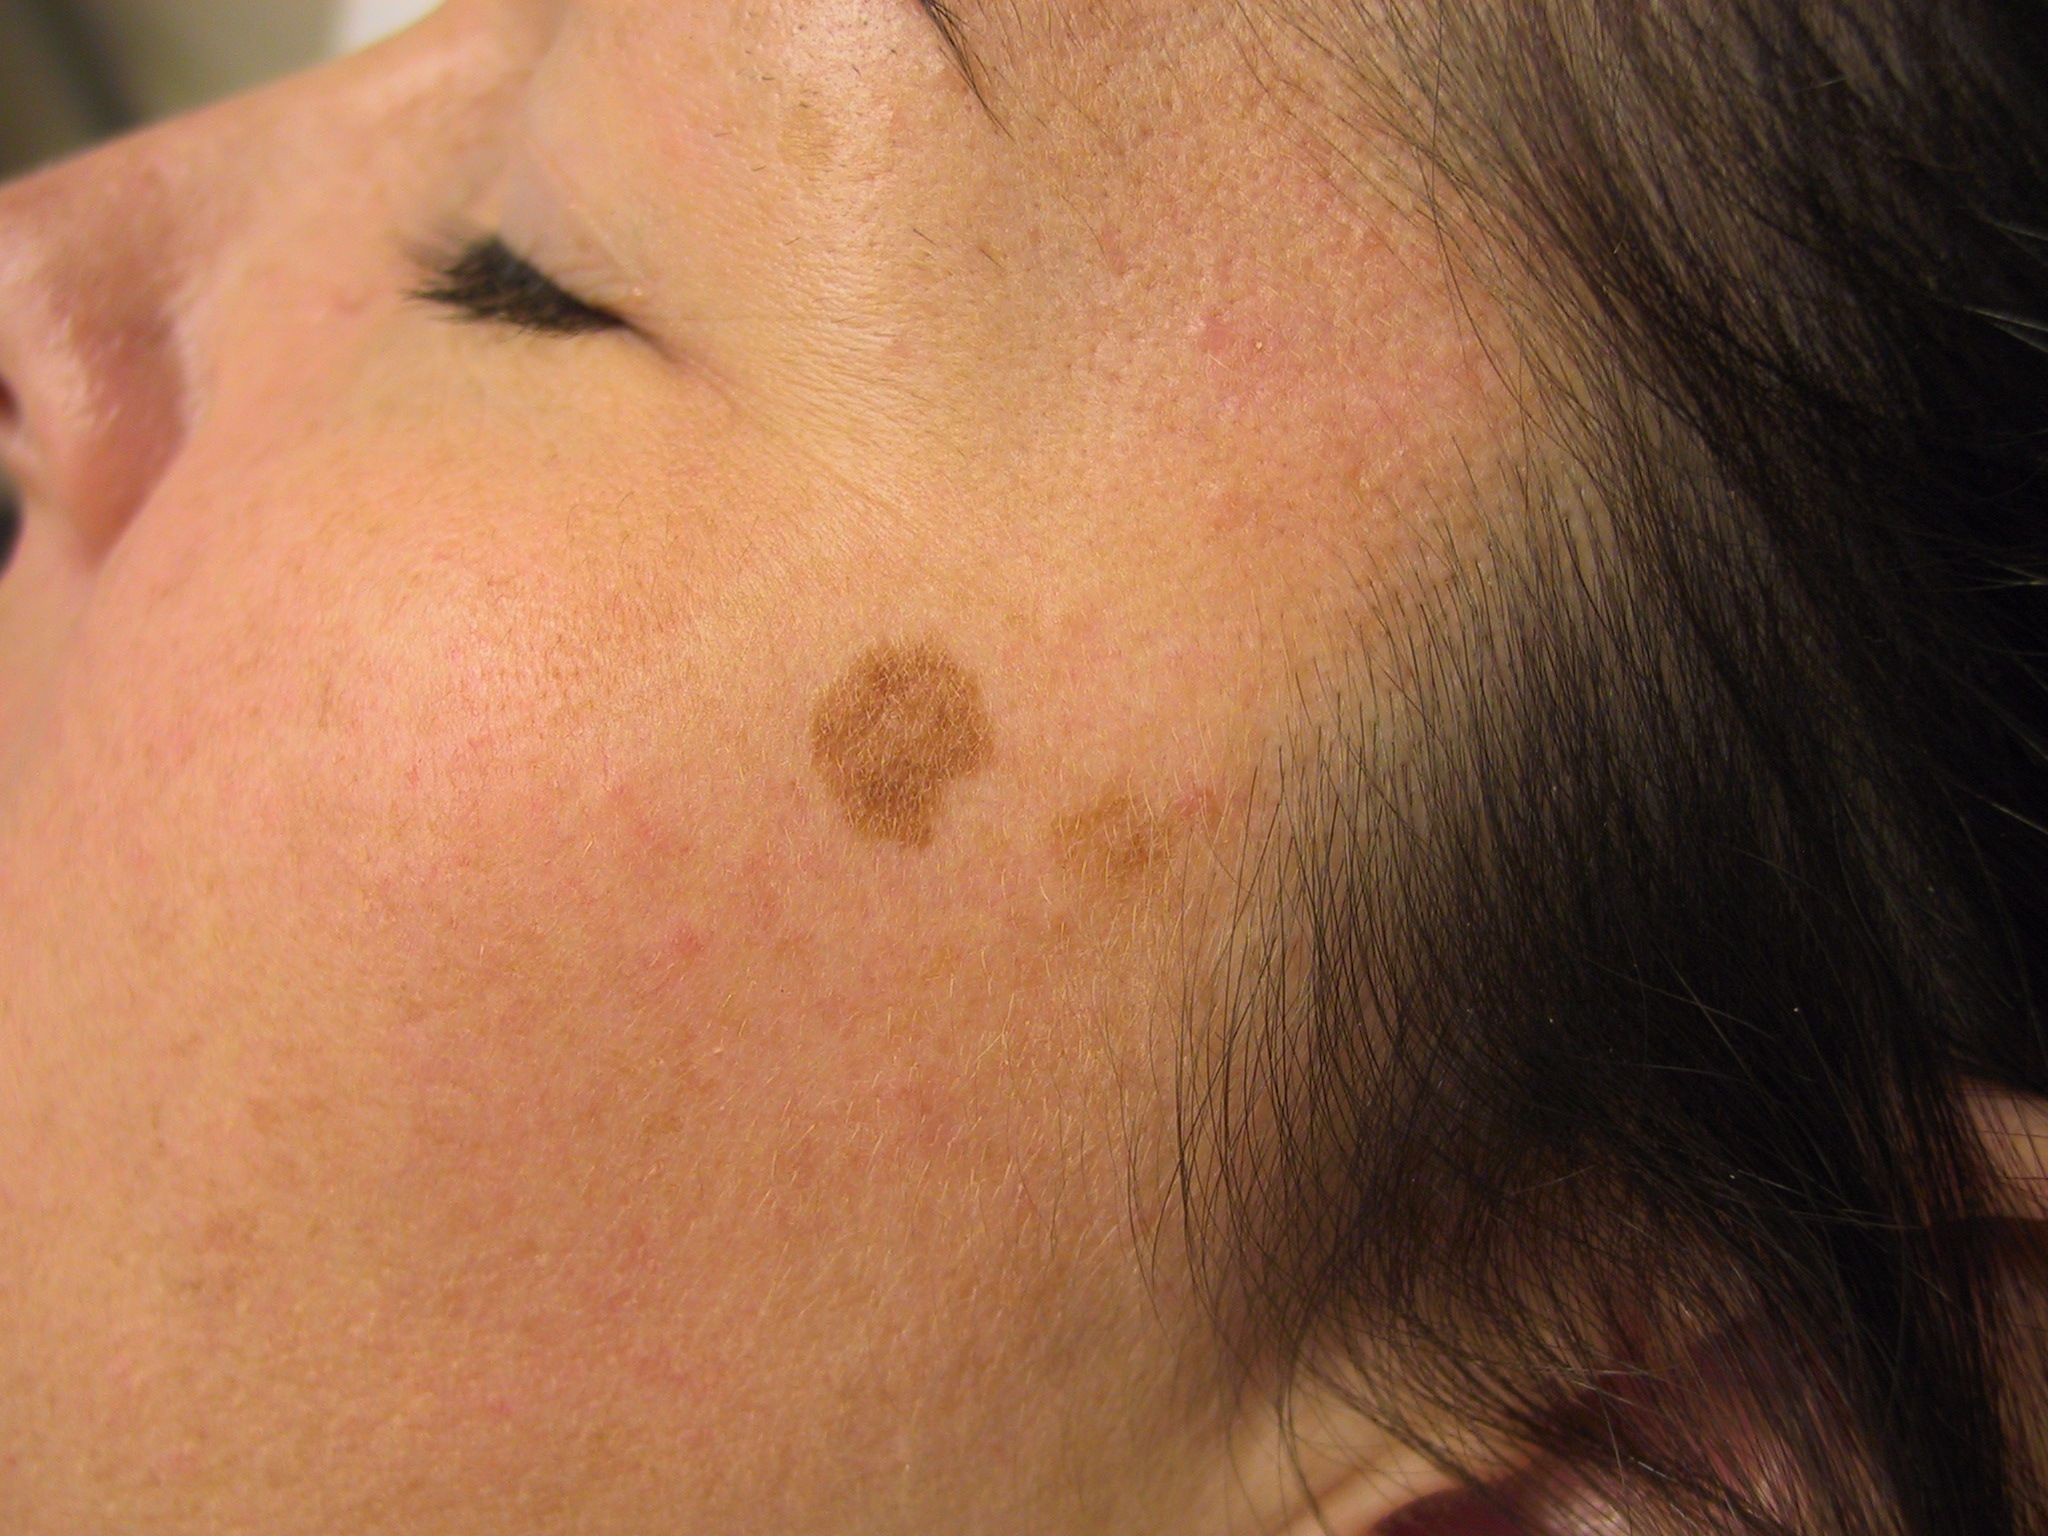 Brown or sun spots also referred to as liver spots.